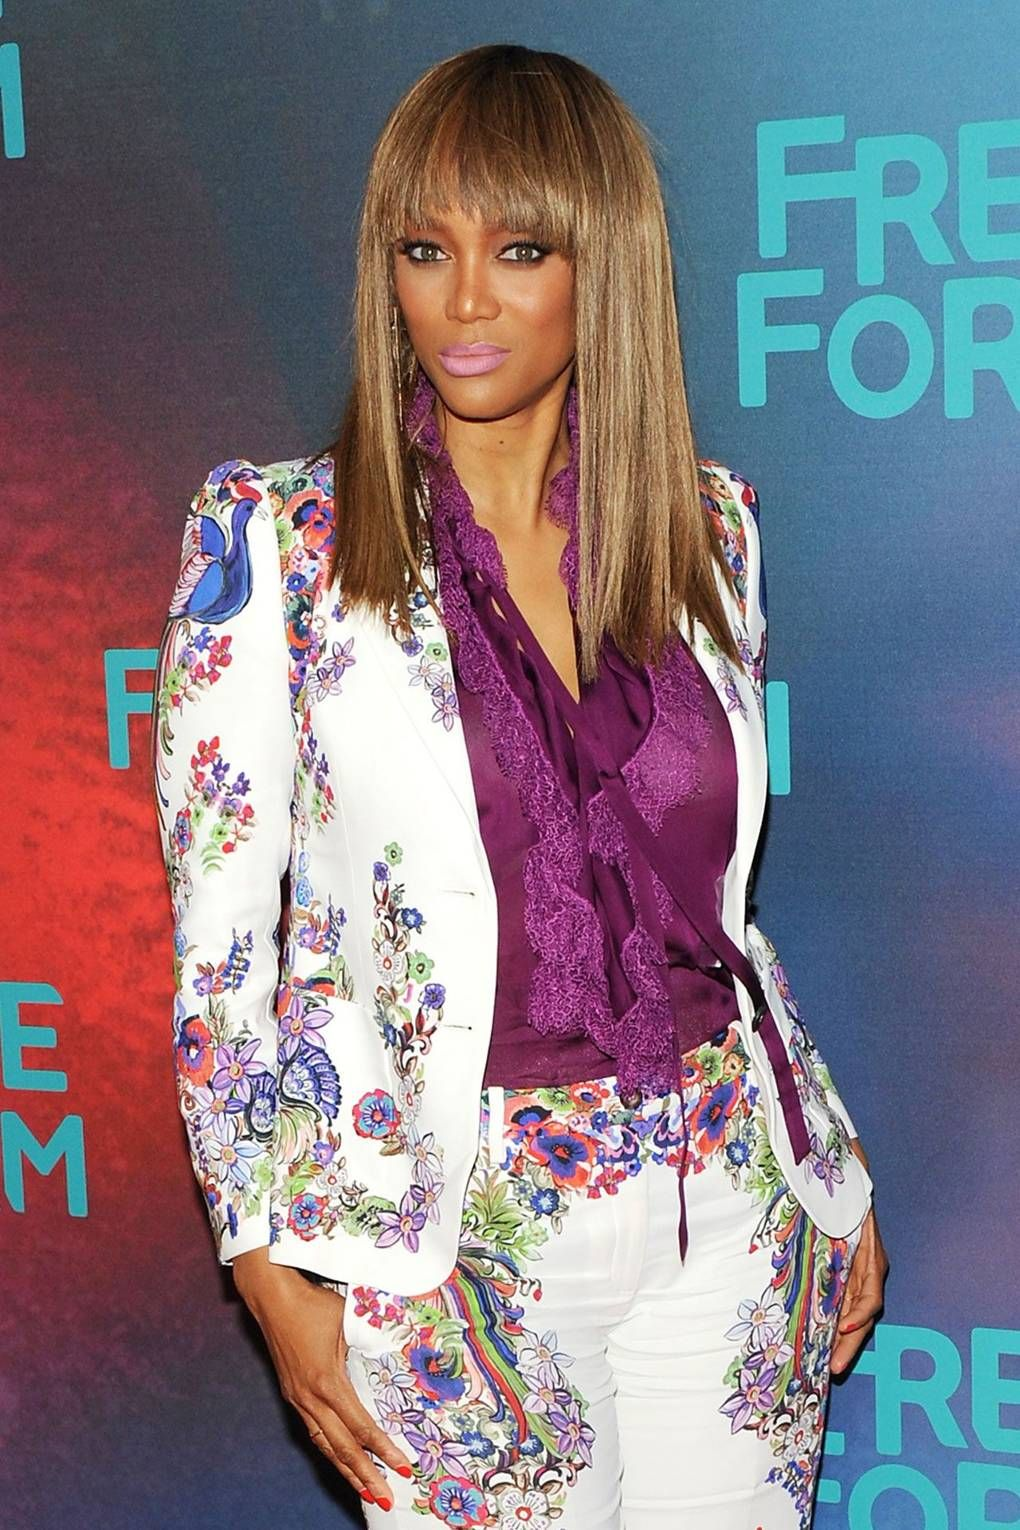 Tyra Banks Has Shared A Portrait Of Her Son For The First Time He S Adorable Tyra Banks Celebrity Beauty Portrait